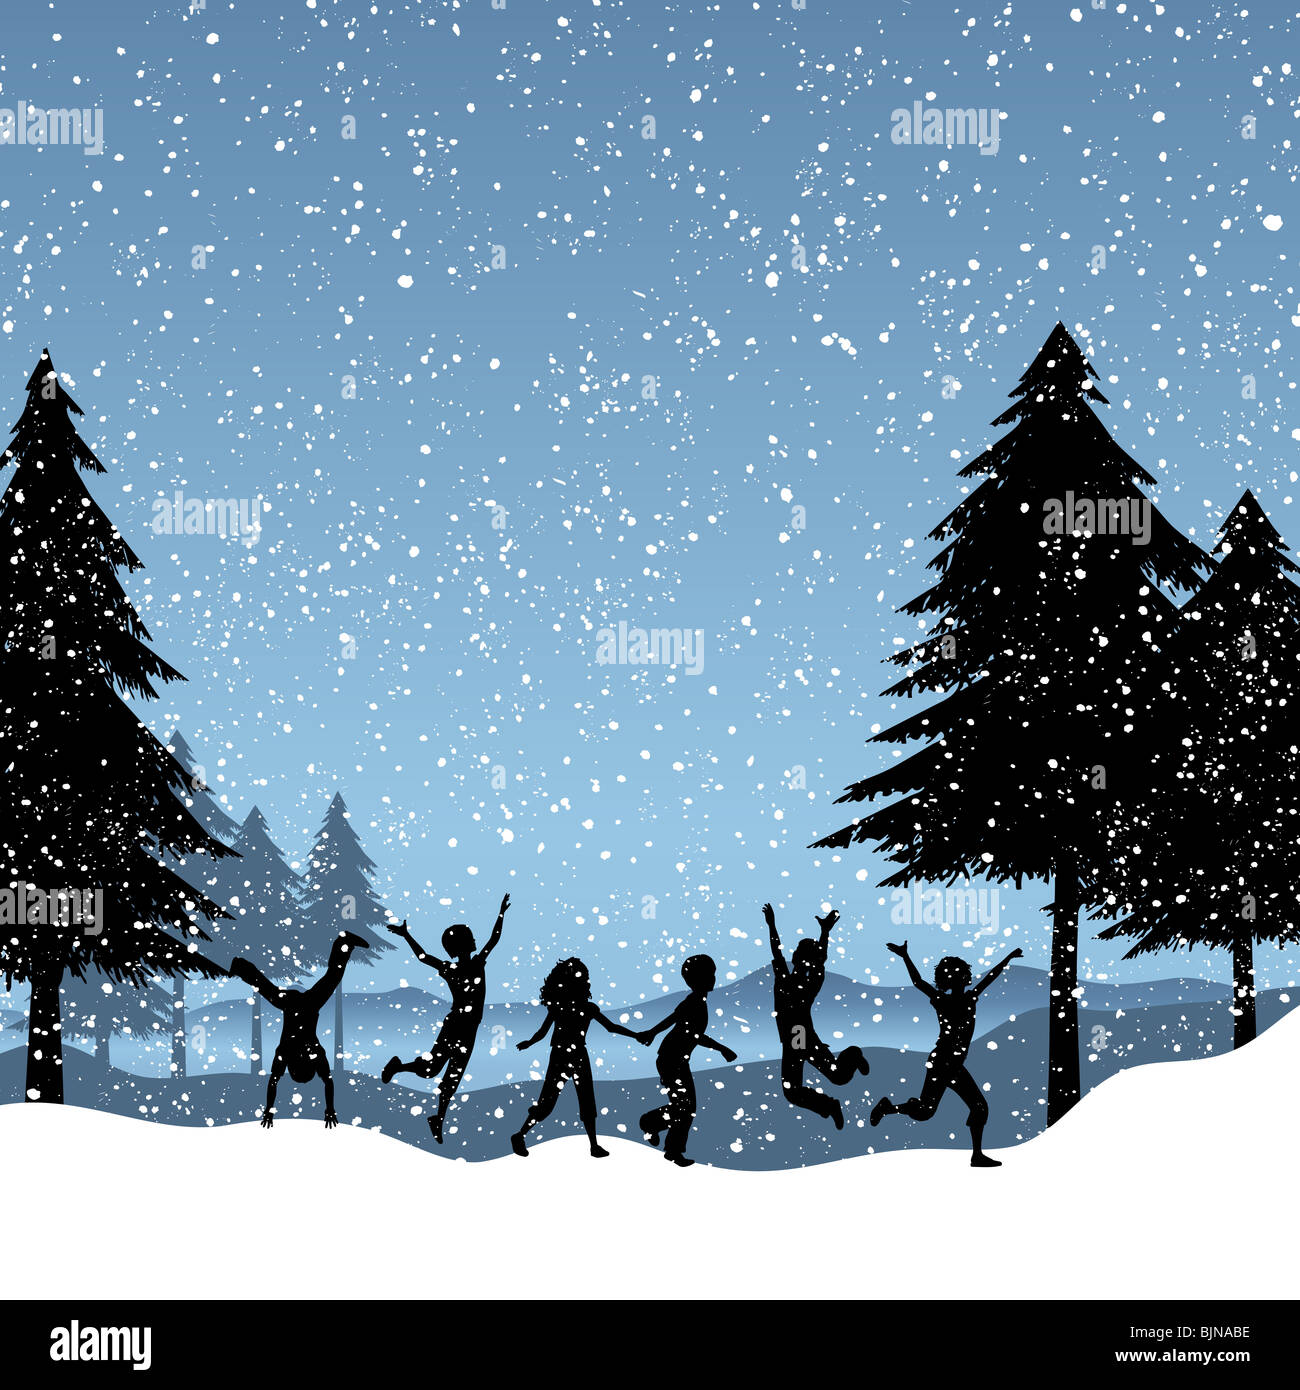 Silhouettes of children playing in the snow - Stock Image